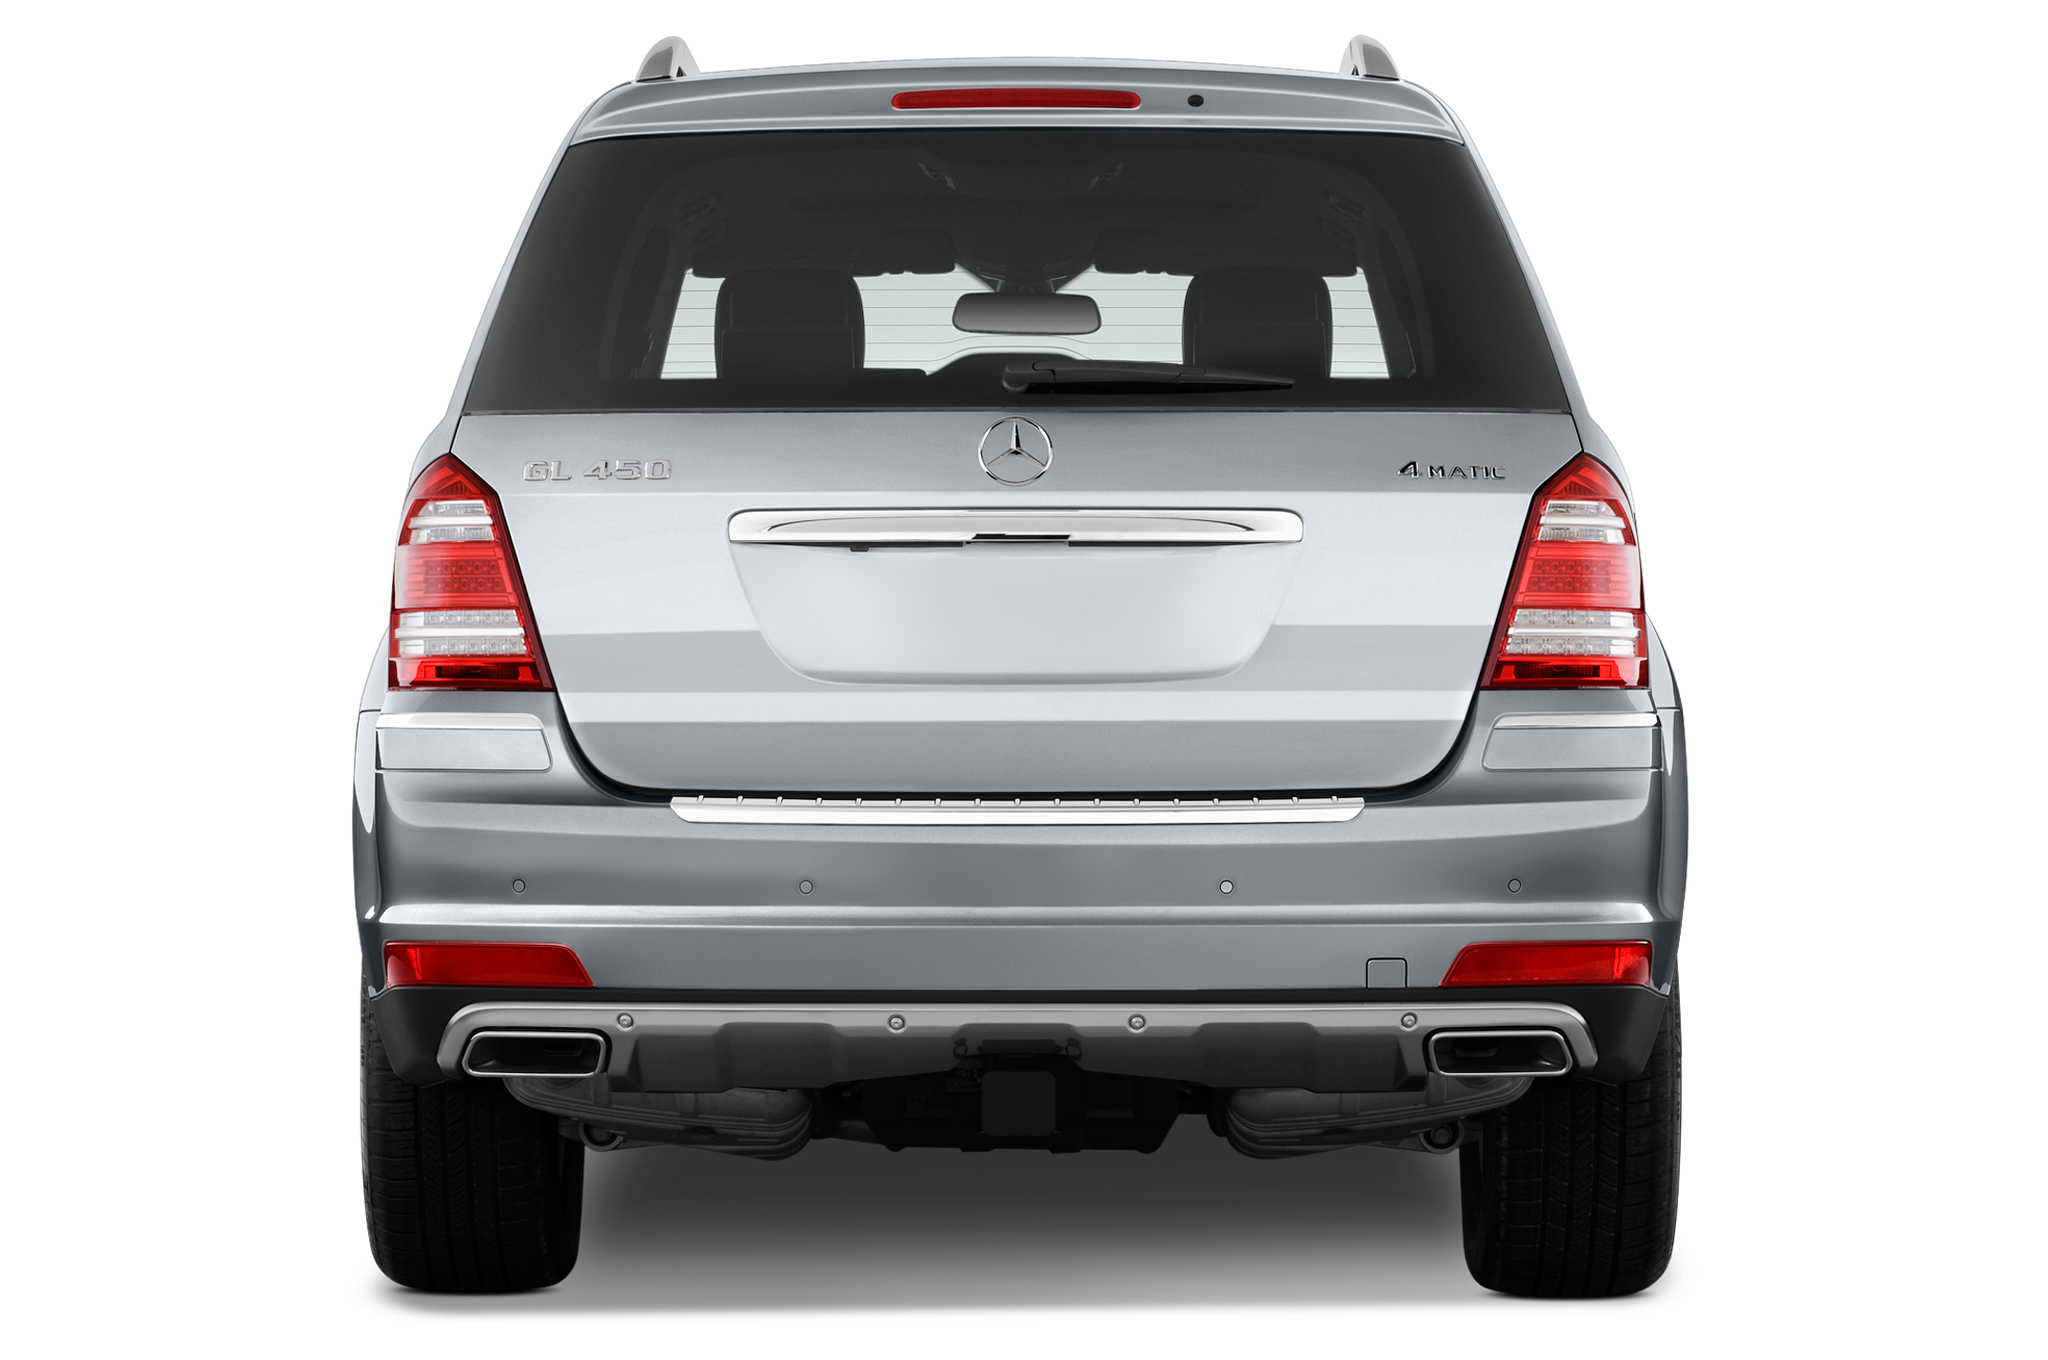 2011 mercedes benz gl350 bluetec editor 39 s notebook for 2011 mercedes benz gl450 suv for sale